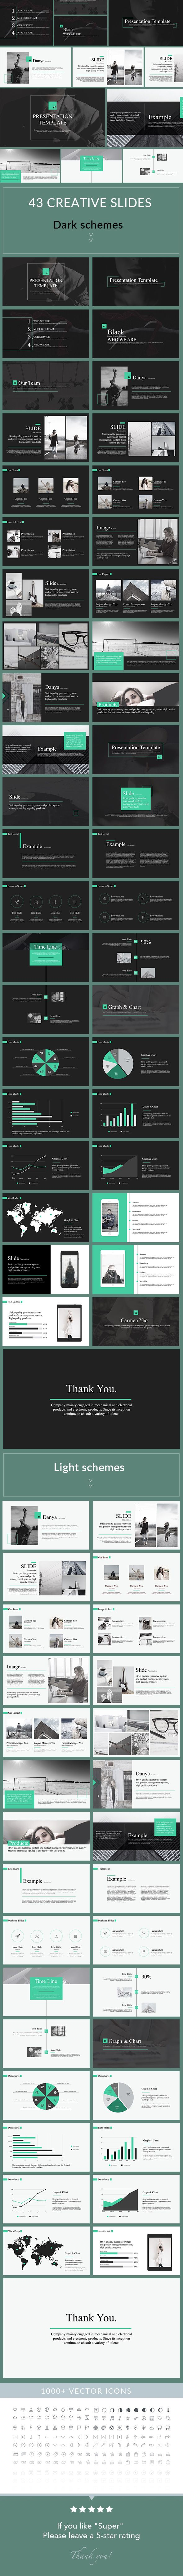 Mark - Clean PowerPoint Presentation Template